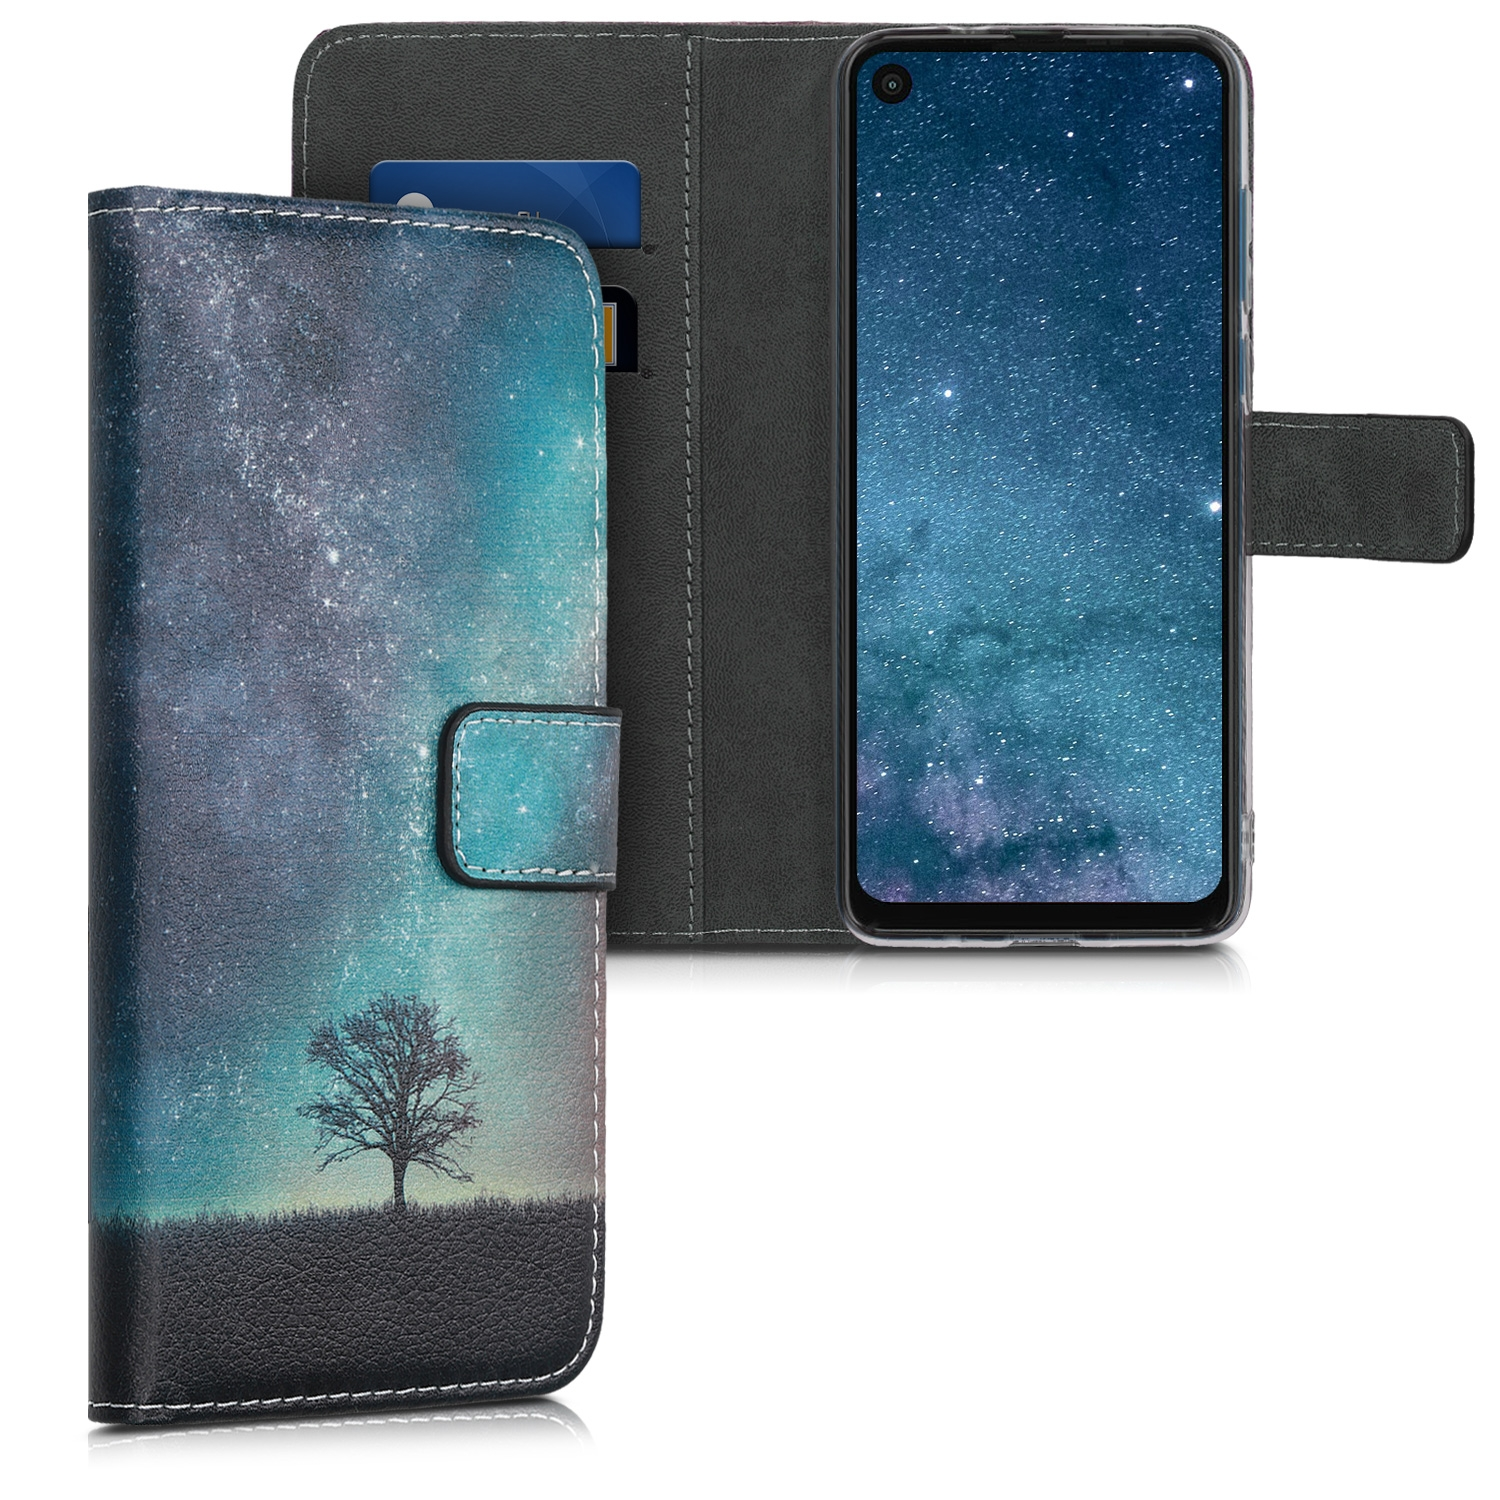 KW Θήκη - Πορτοφόλι Motorola One Vision - Cosmic Nature, Blue / Grey / Black (49519.01)